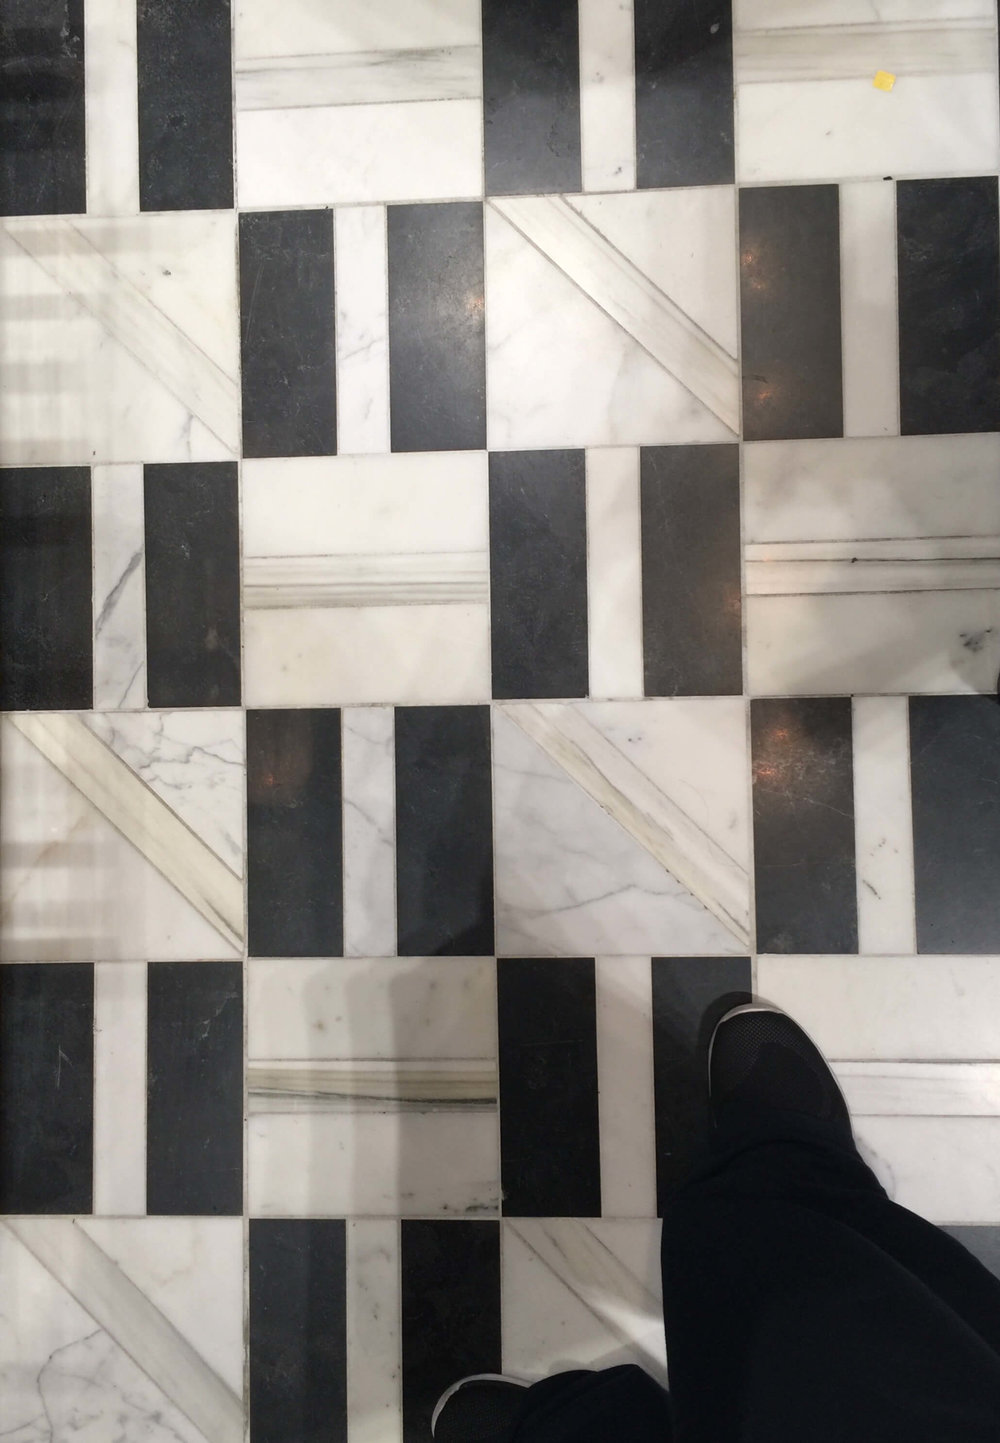 Who doesn't love a black and white marble floor? From Ann Sacks. #blackandwhite #marbletile #tile #marblefloors